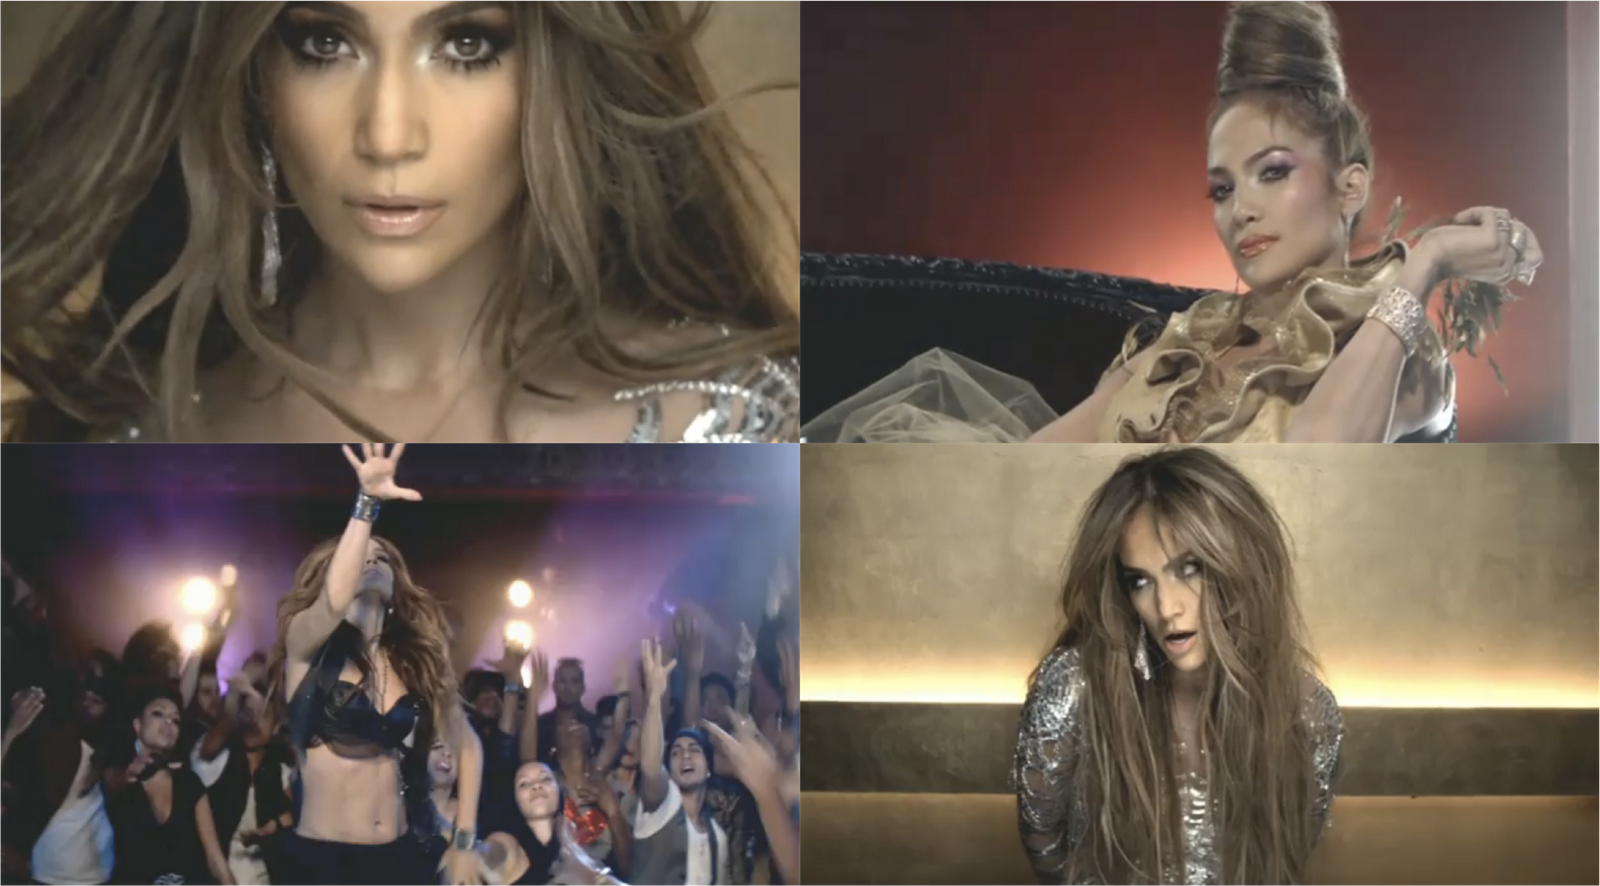 http://1.bp.blogspot.com/-YIECfuzE8b8/TkLYs8PyhUI/AAAAAAAAA_4/hF0b4YkXZCg/s1600/jennifer-lopez-on-the-floor-music-video.png